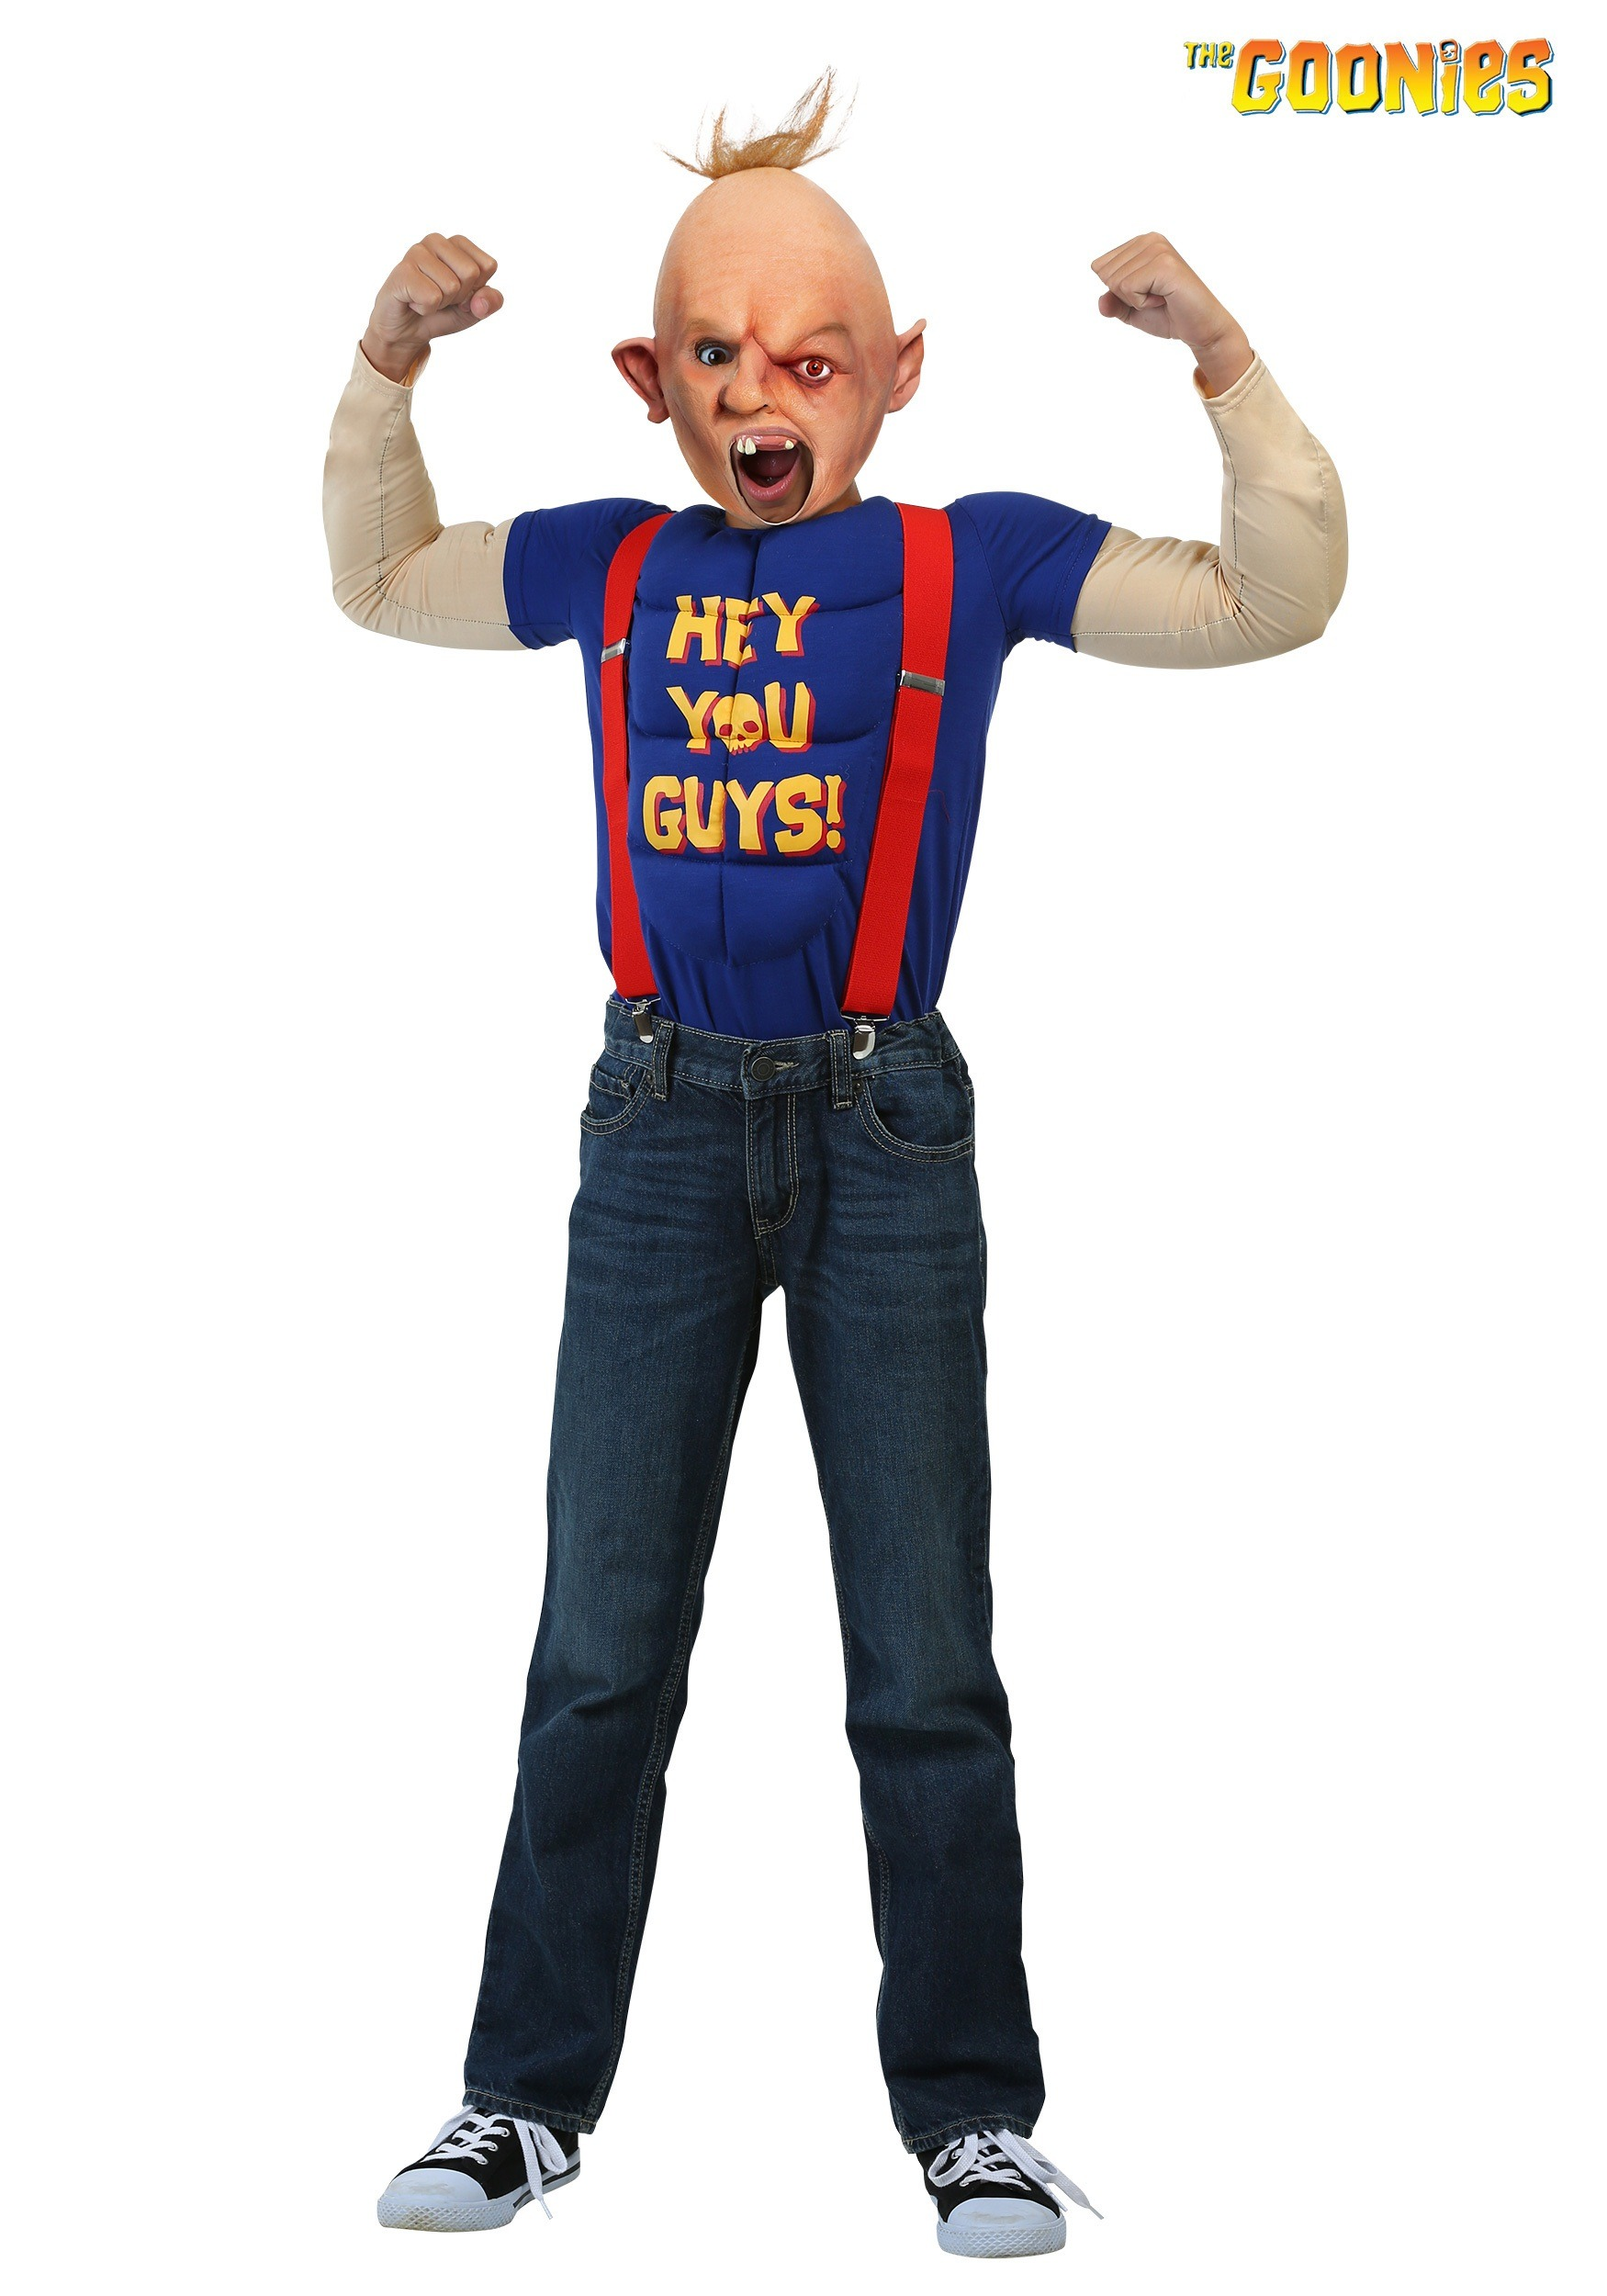 The Goonies Sloth Costume For Kids